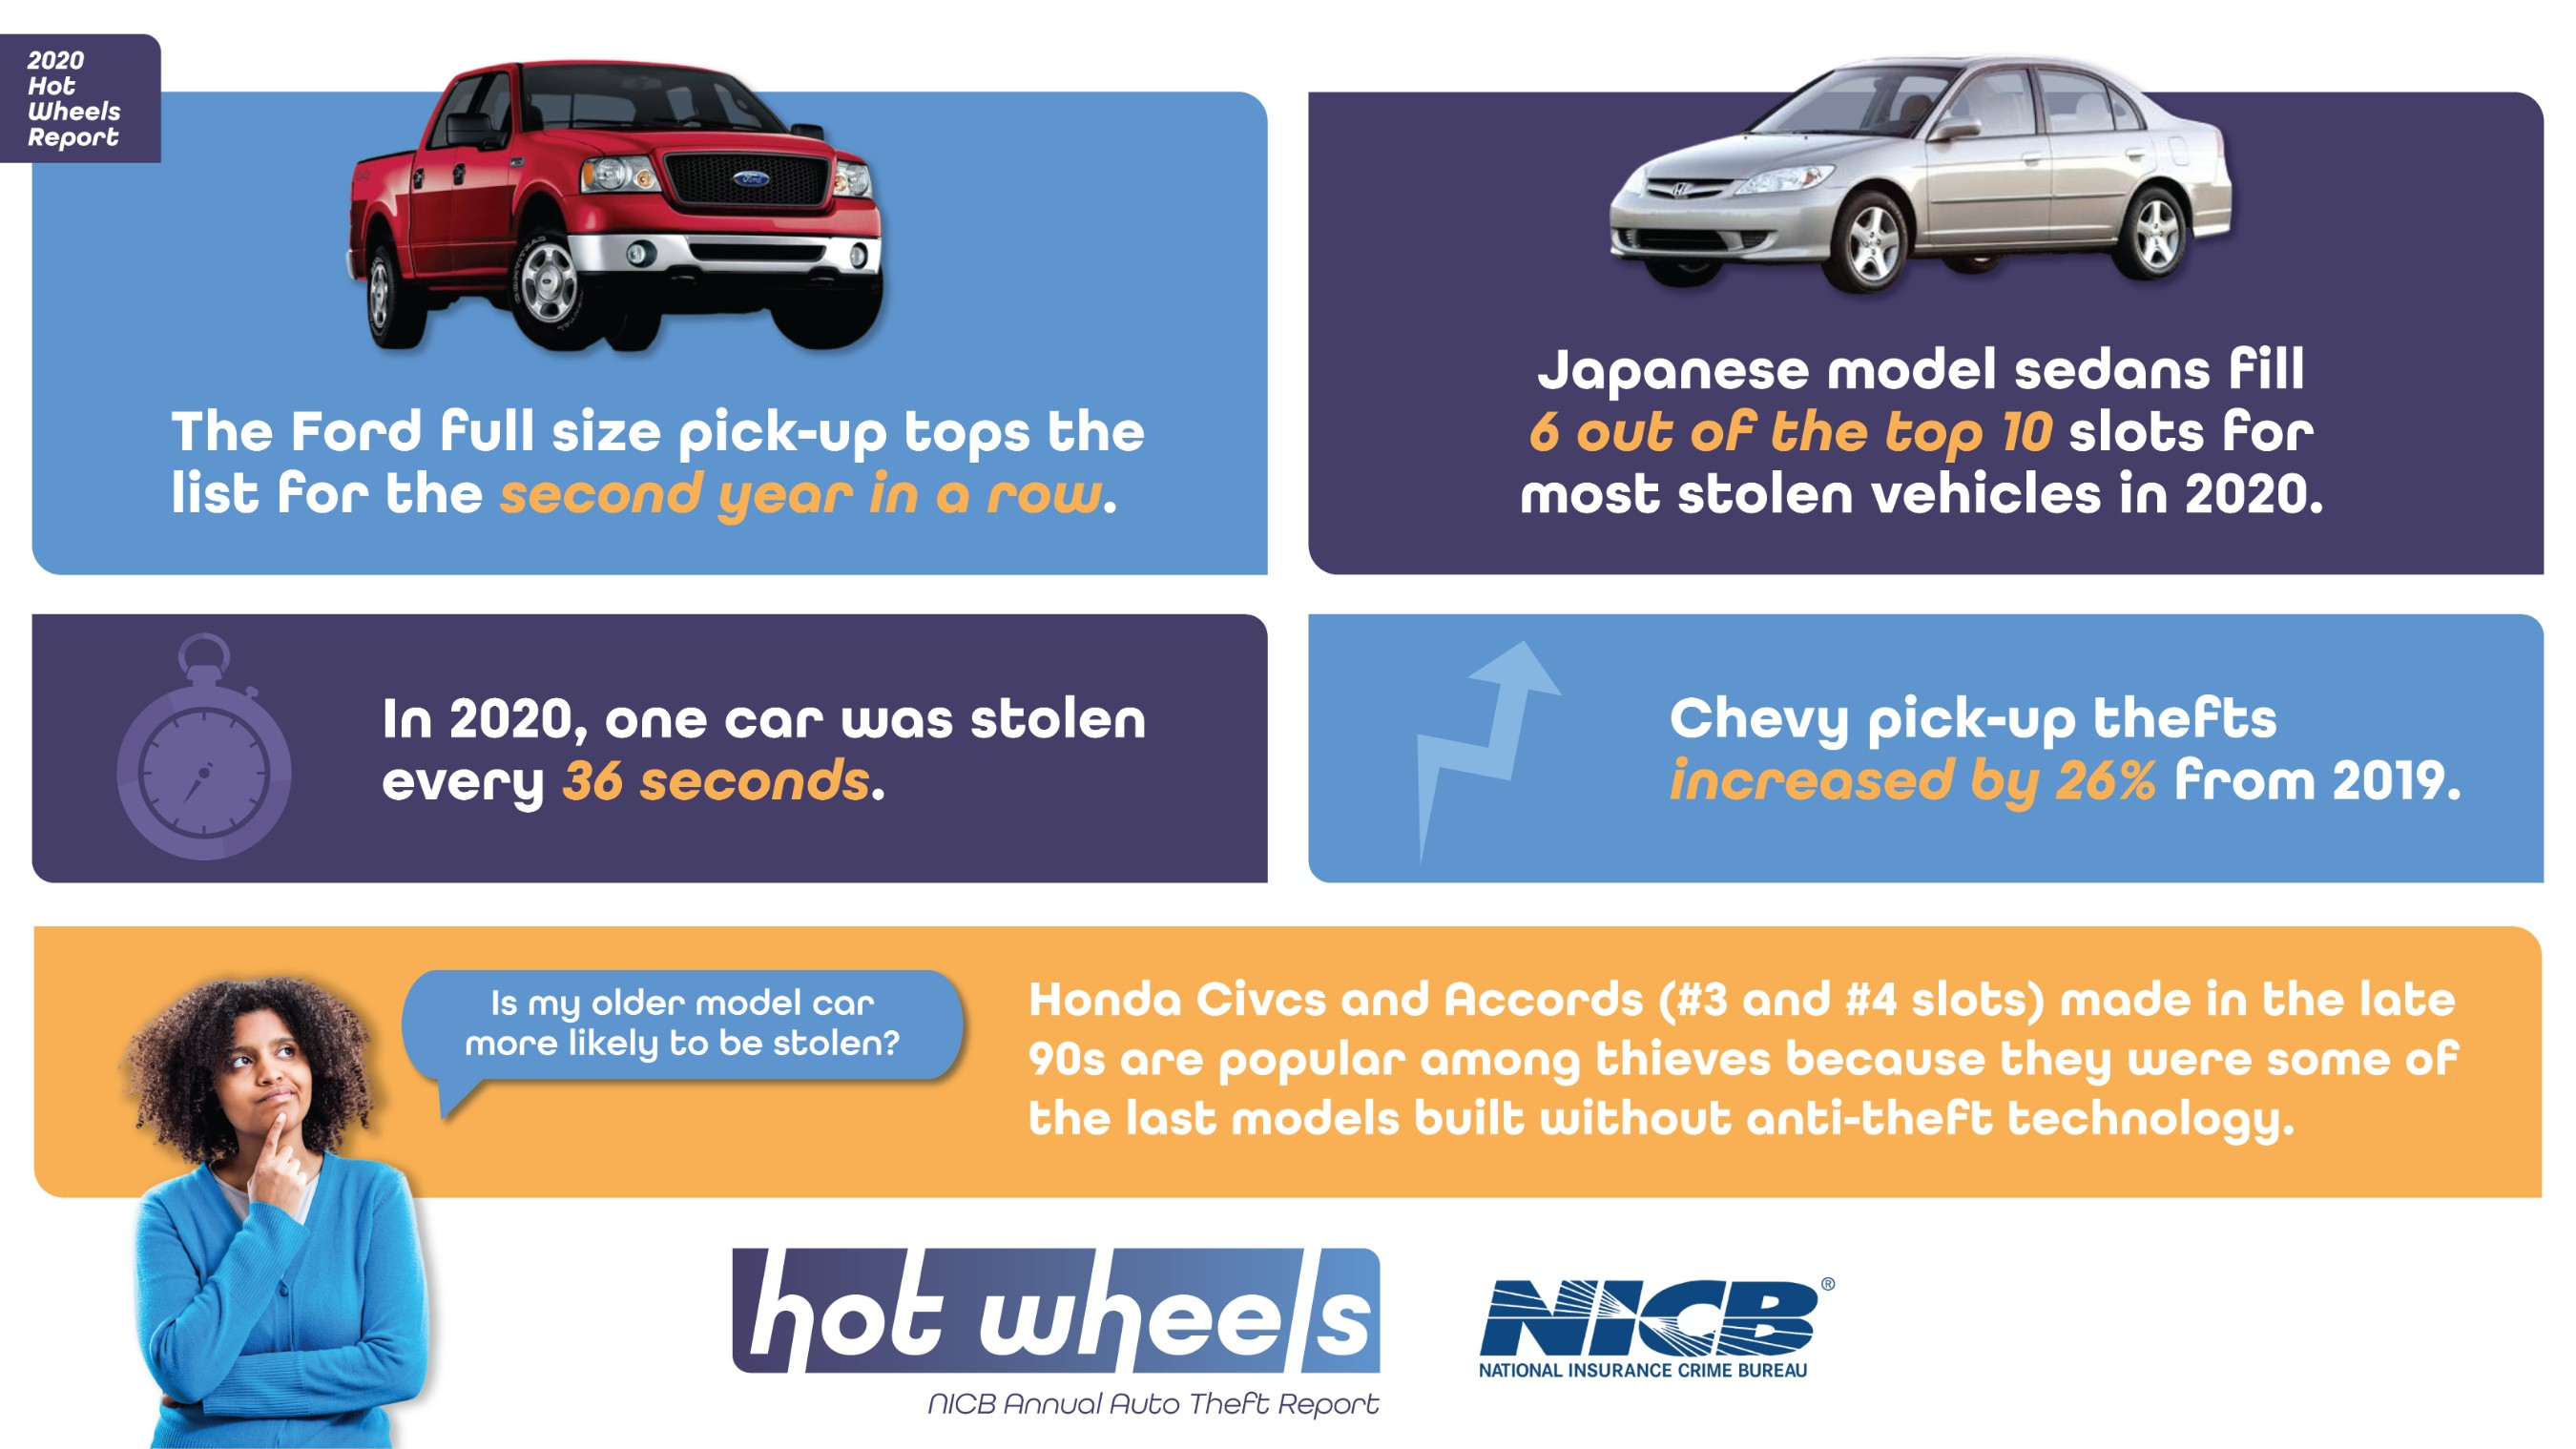 Five takeaways from the NICB 'Hot Wheels' report.